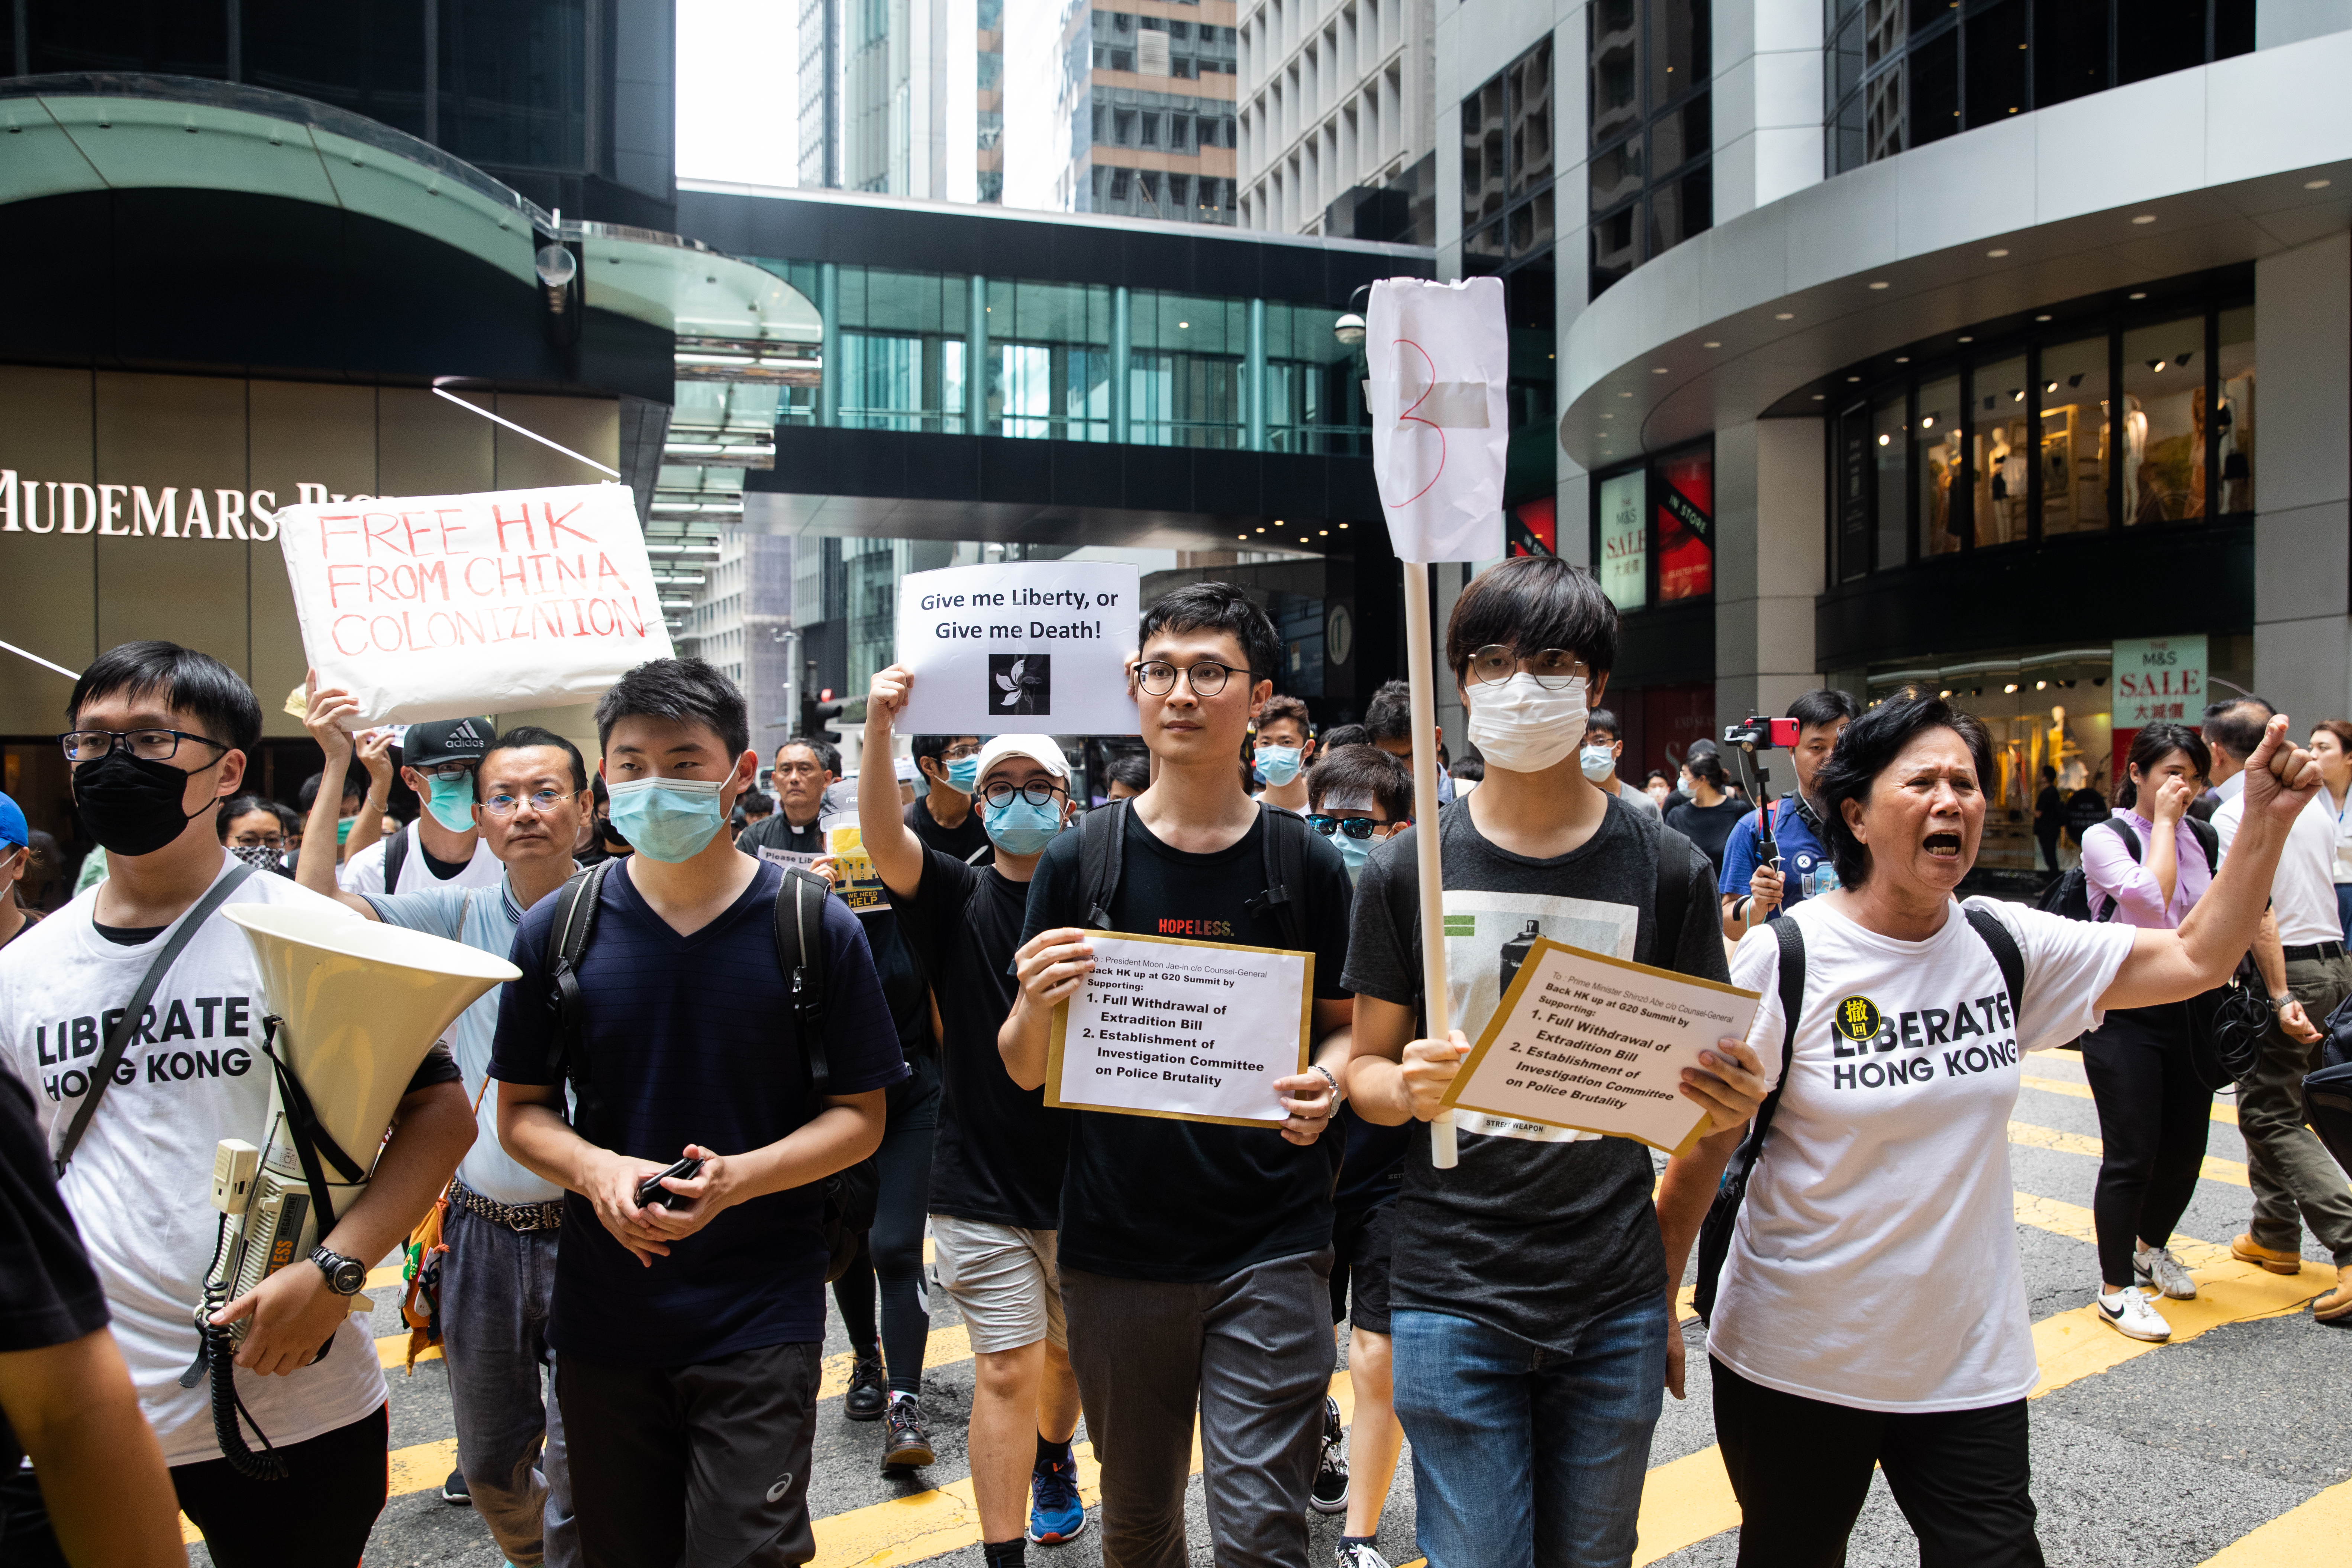 Ventus Lau (C) leads a march to deliver letters to local G-20 consulates urging global intervention against a proposed extradition bill in Hong Kong, China, on Wednesday, June 26, 2019.